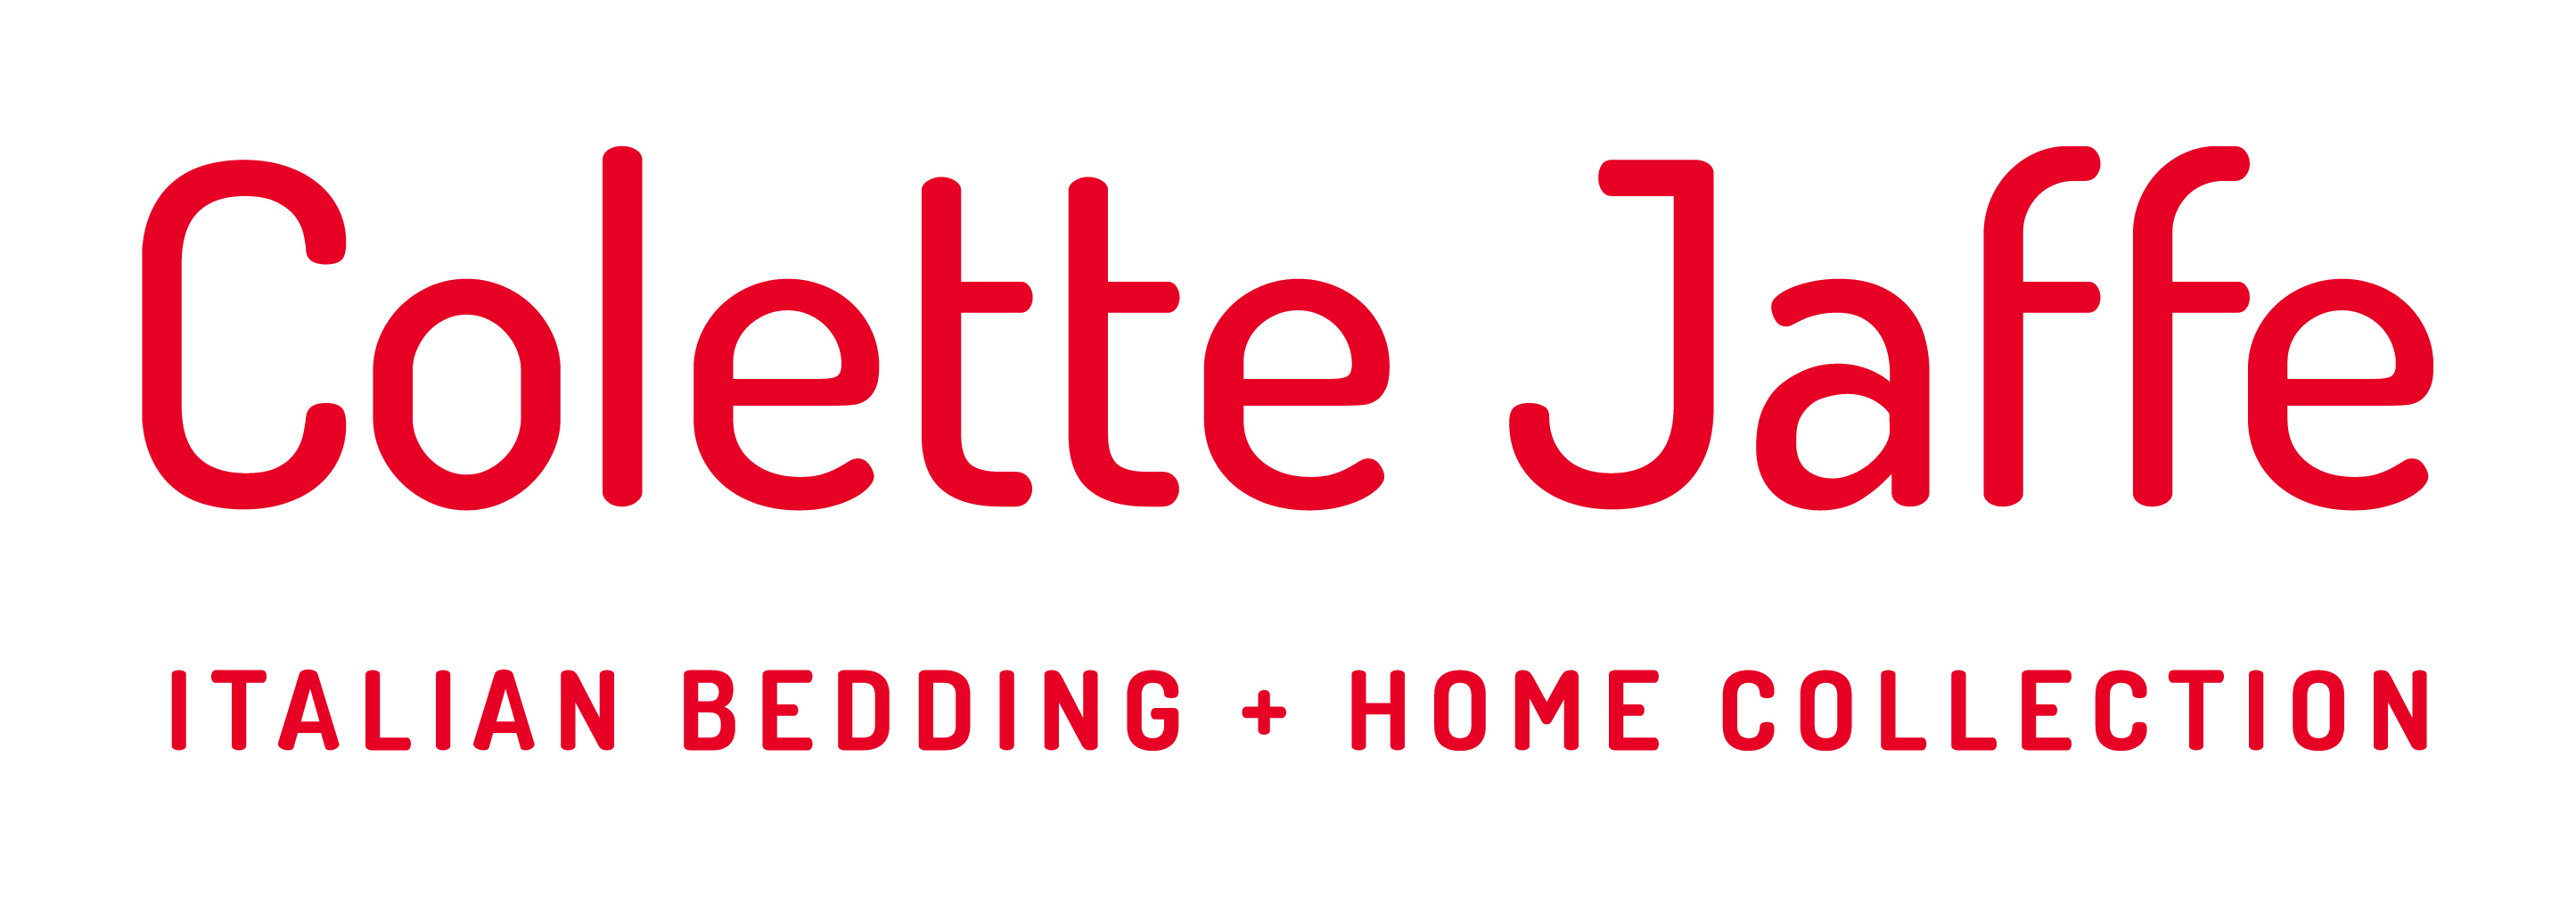 Colette Jaffe - Italian Bedding + Home Collection logo